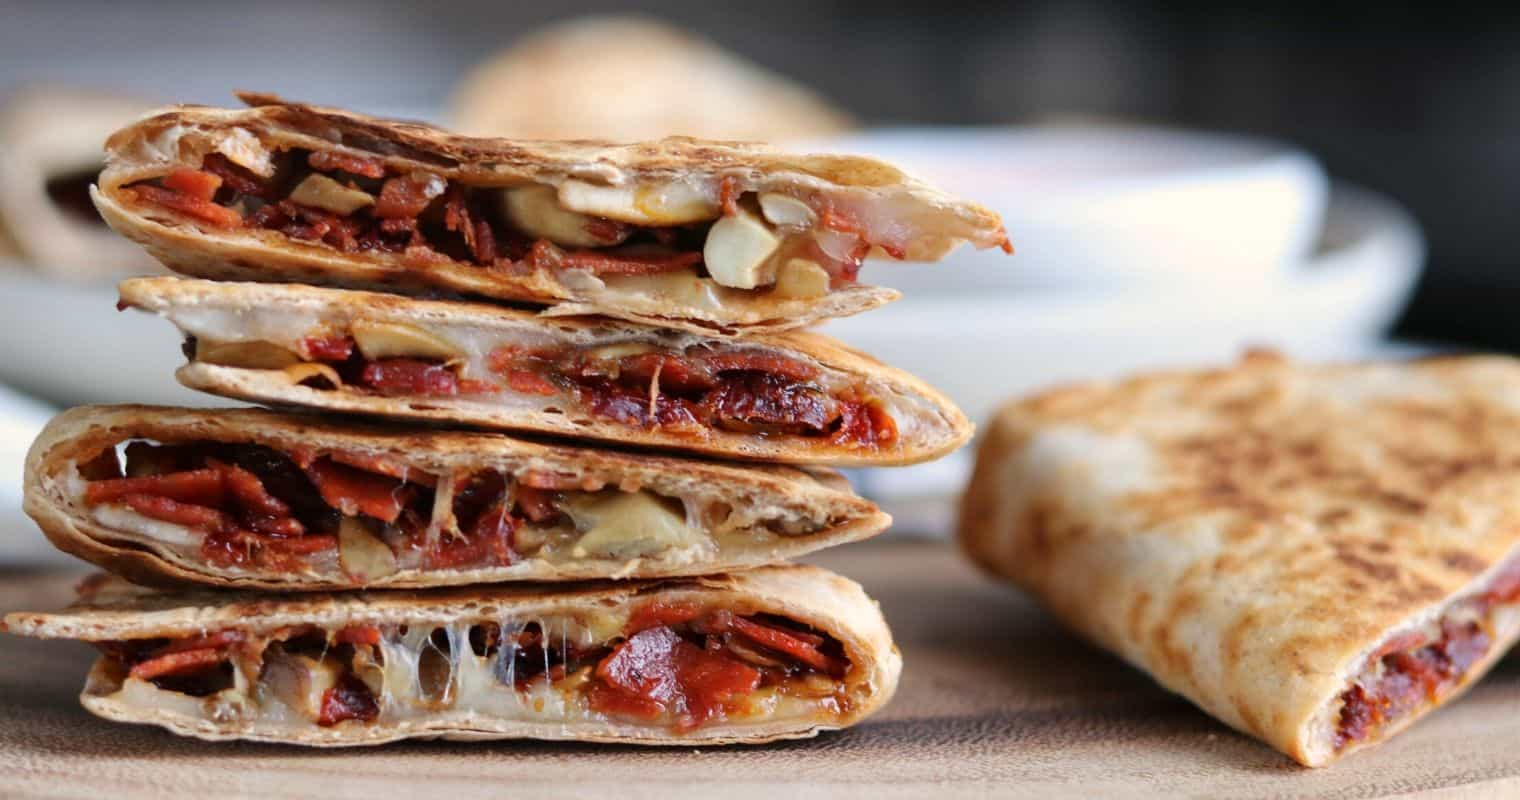 sliced pizza quesadillas on a wooden serving board